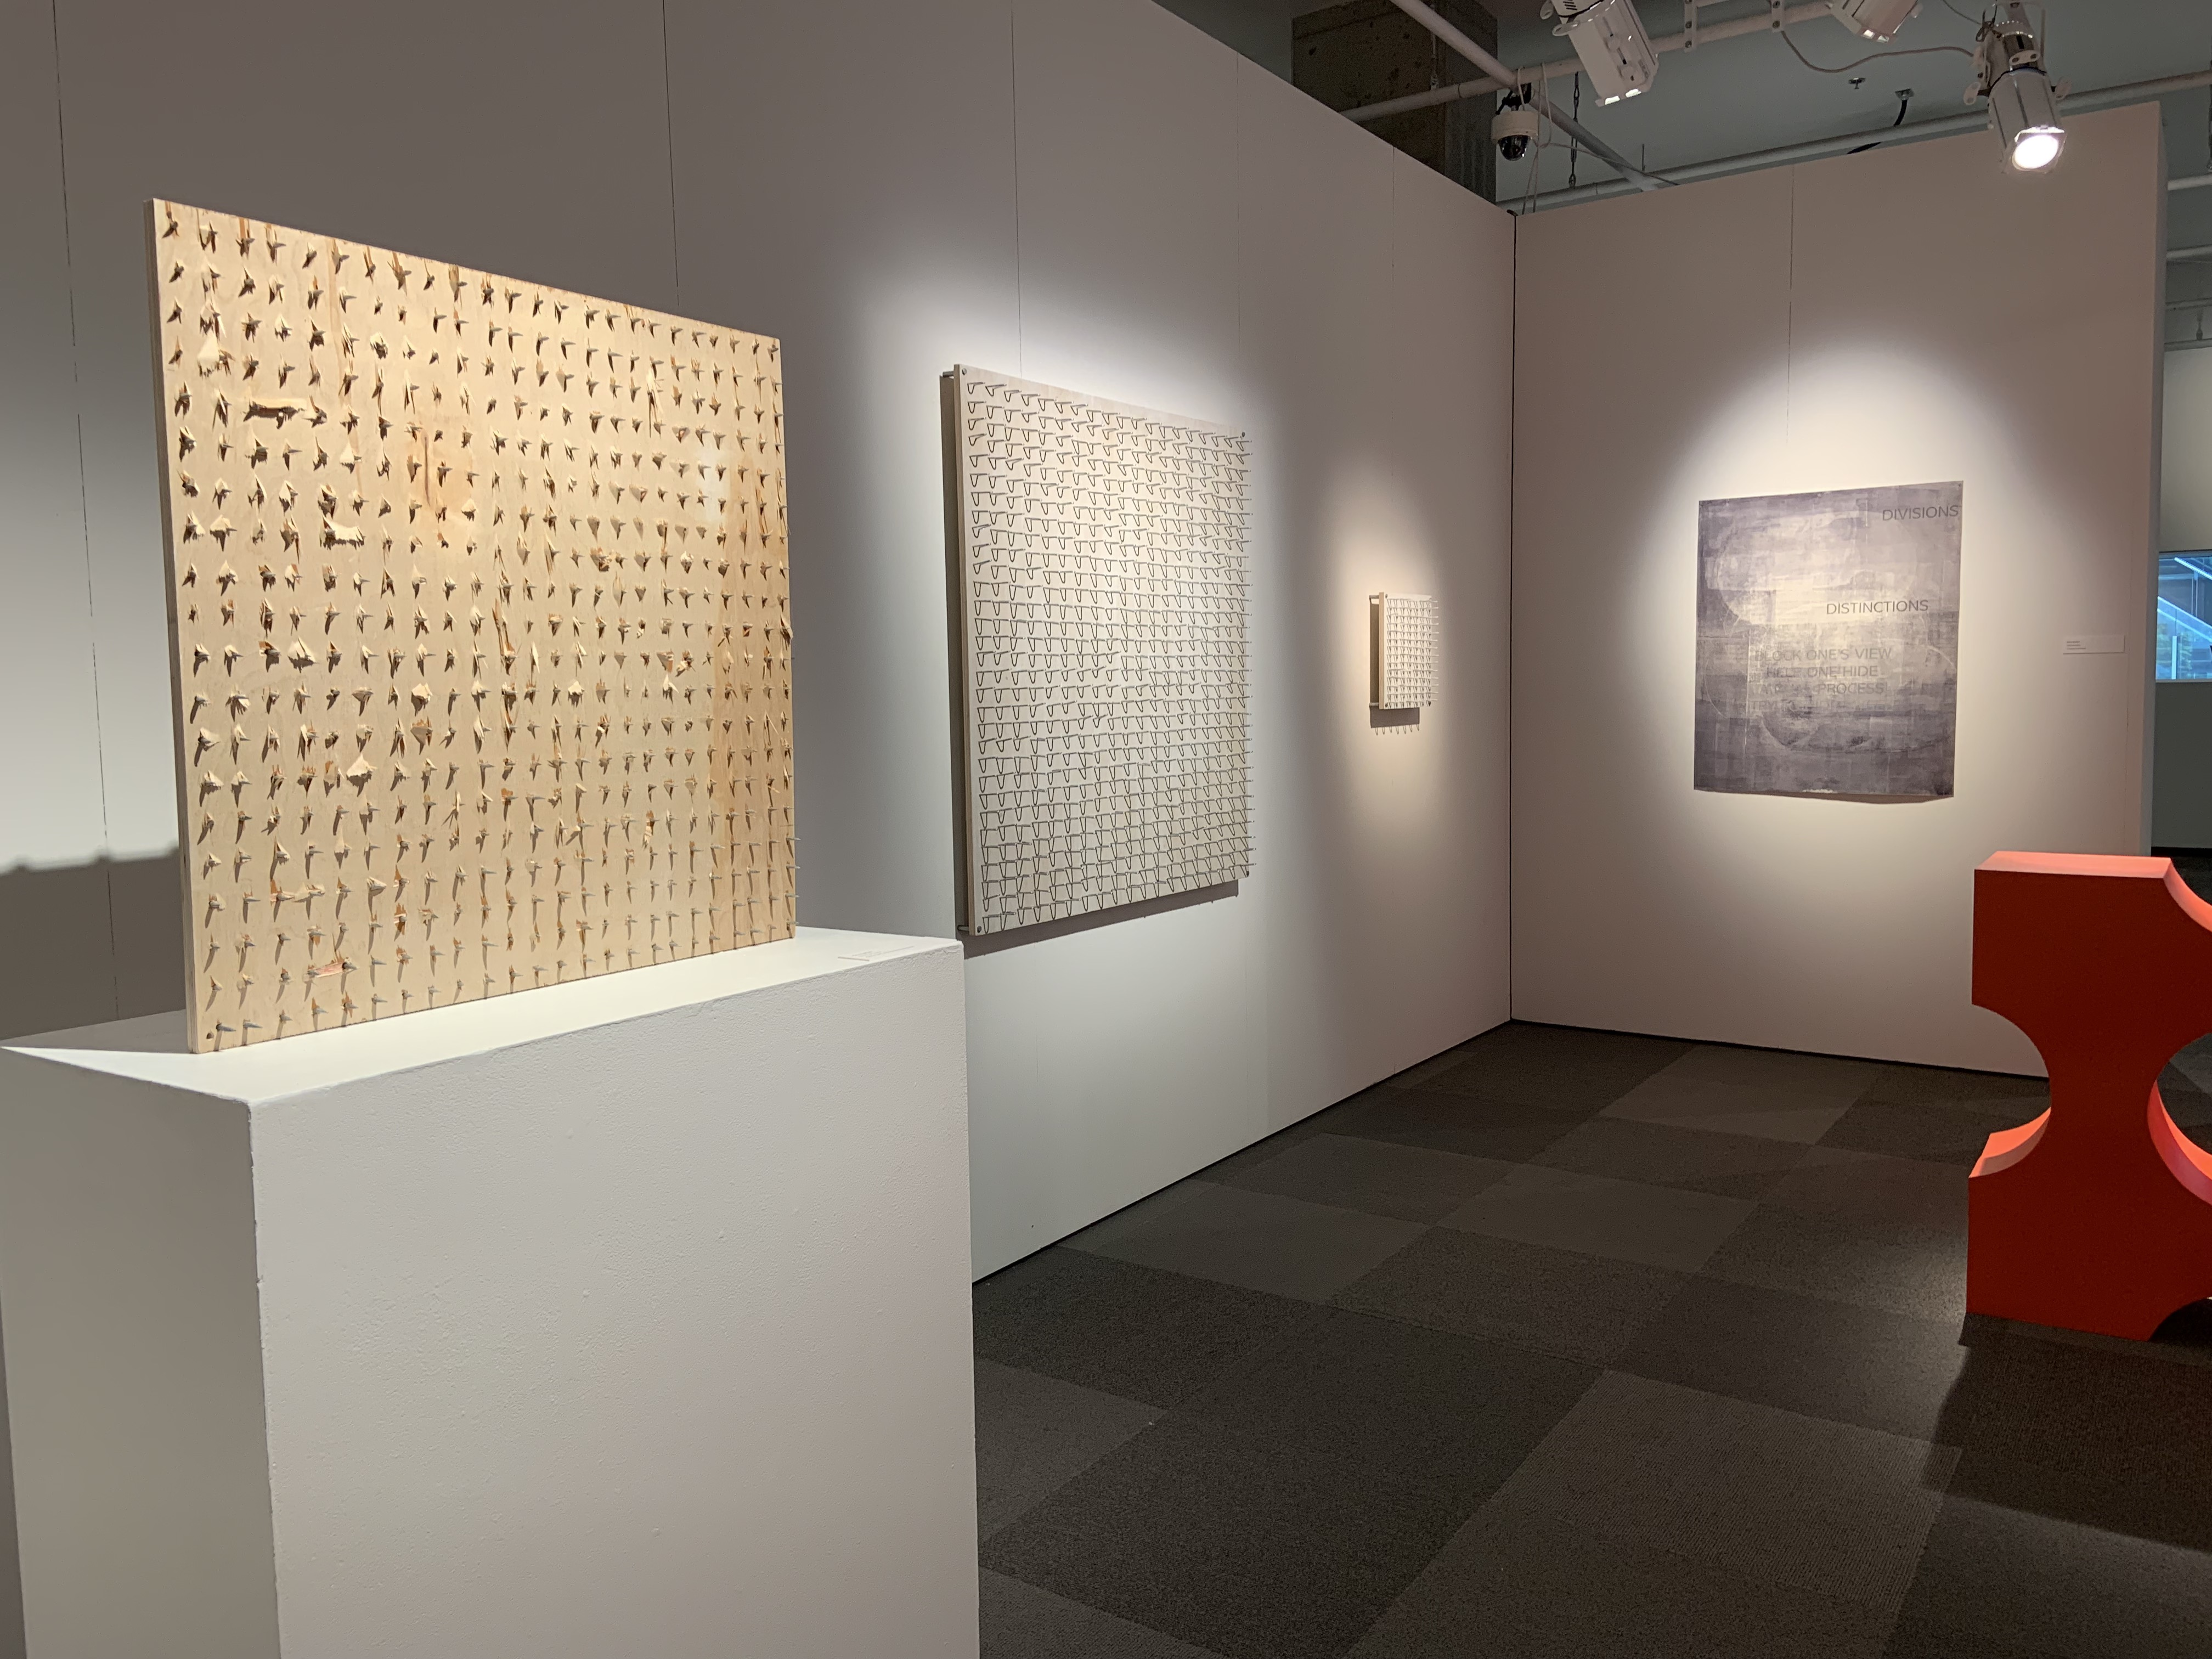 Fiona Couillard: A Series of Related Things (installation view)